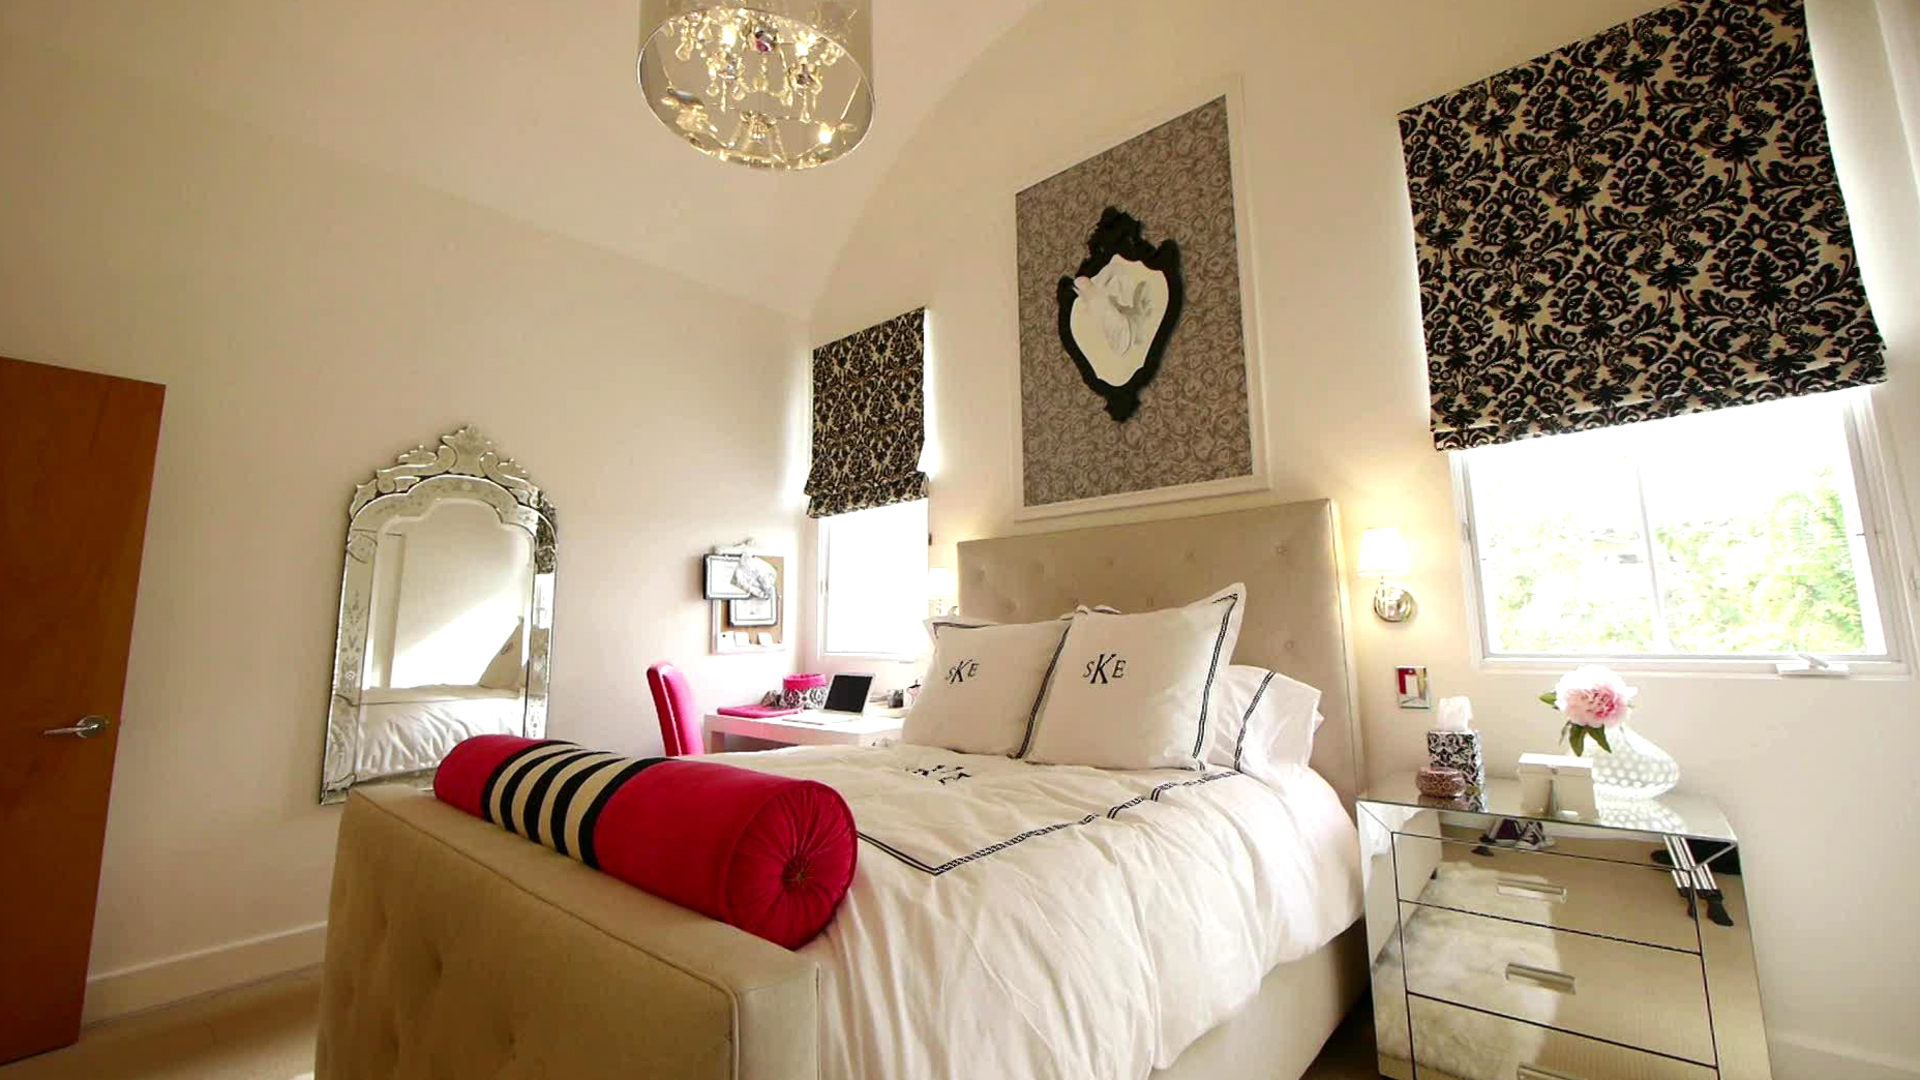 teen girls bedroom ideas teen bedrooms - ideas for decorating teen rooms | hgtv UIIIHVI